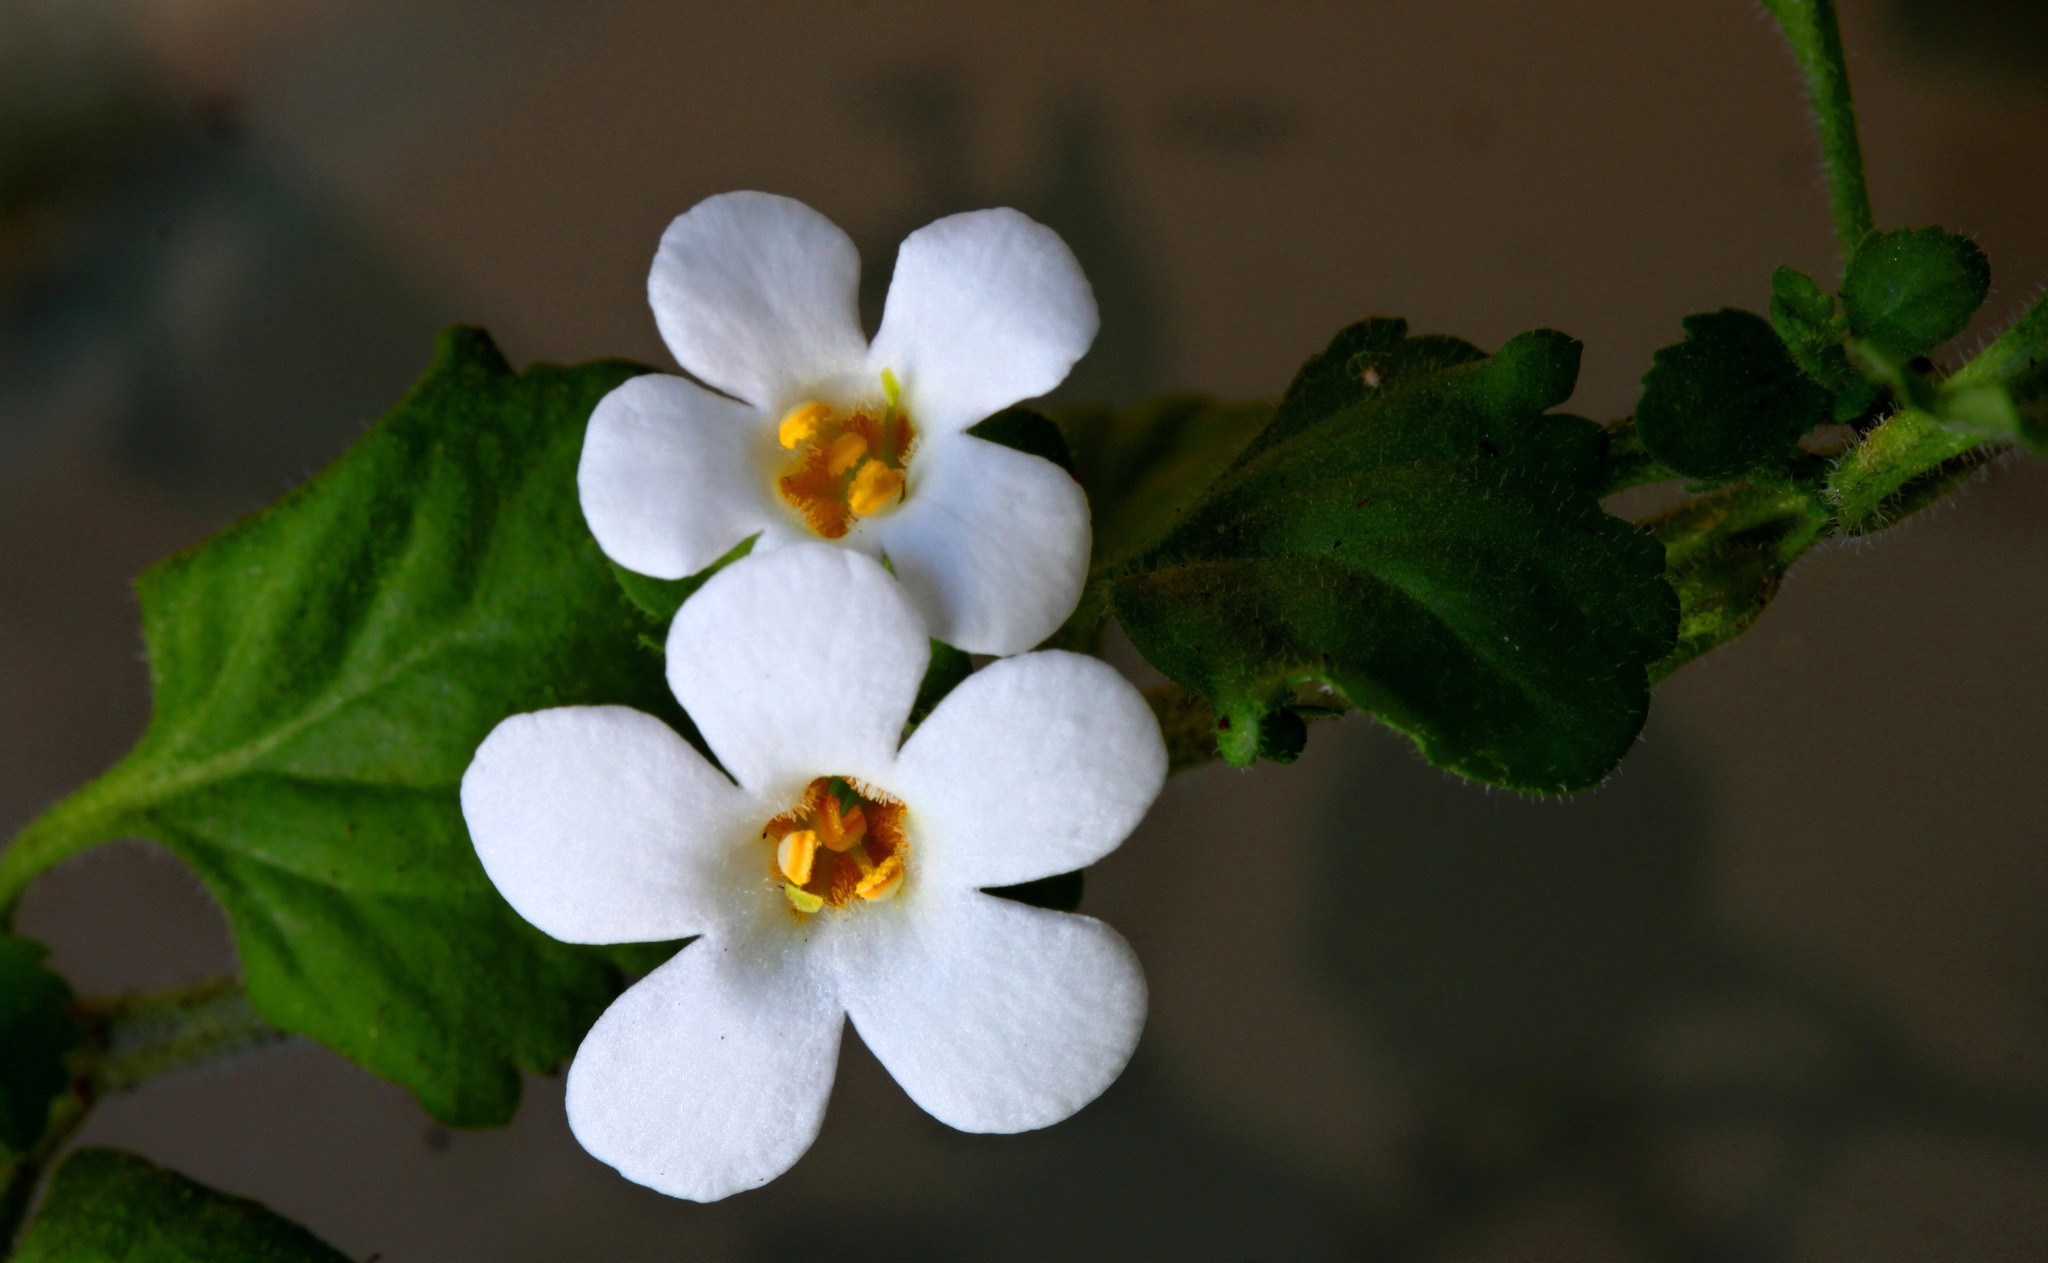 Flowers: Flowers White Two Beautiful Picture Nice Flower for HD 16:9 ...